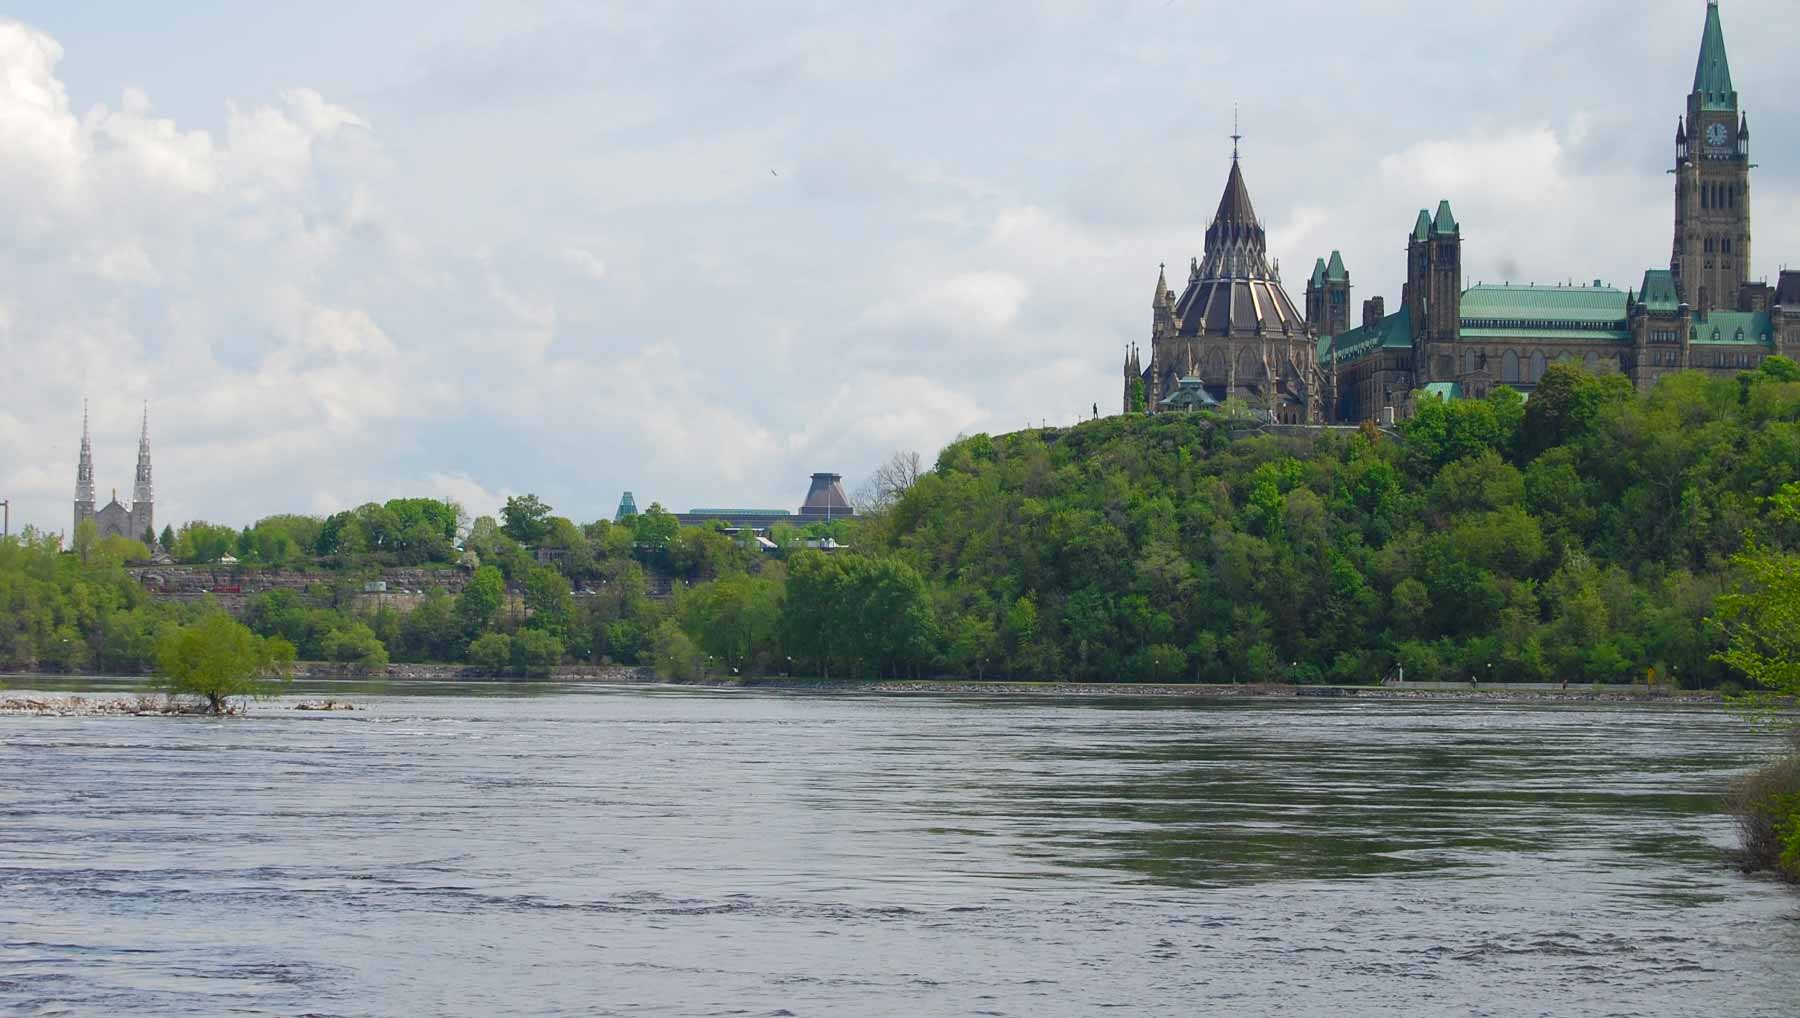 Parliament Hill overlooking the Ottawa River